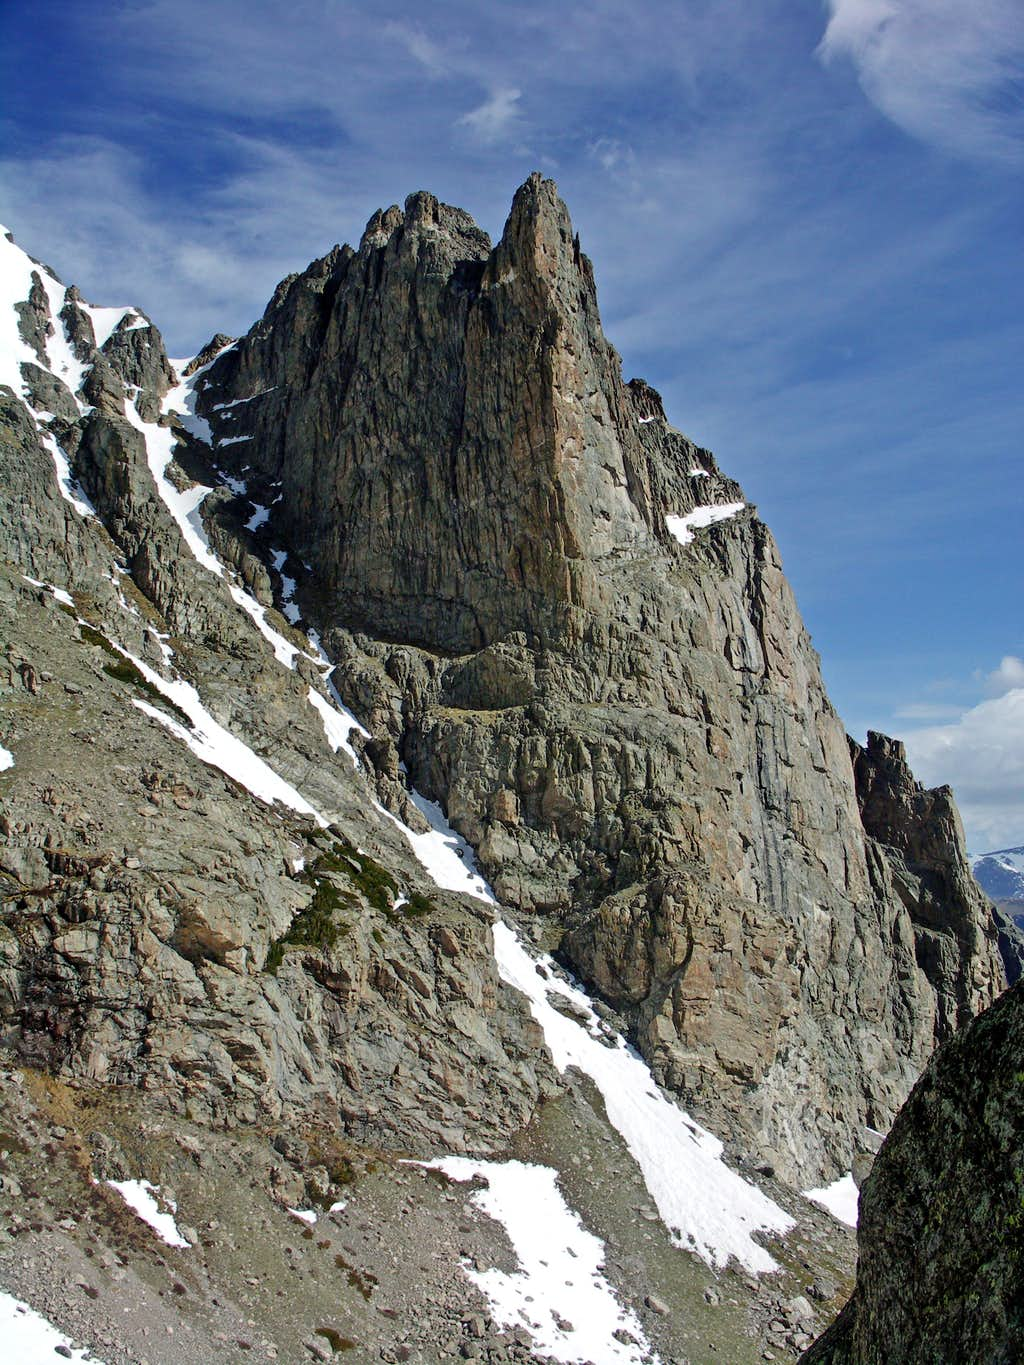 From Flattop Gully